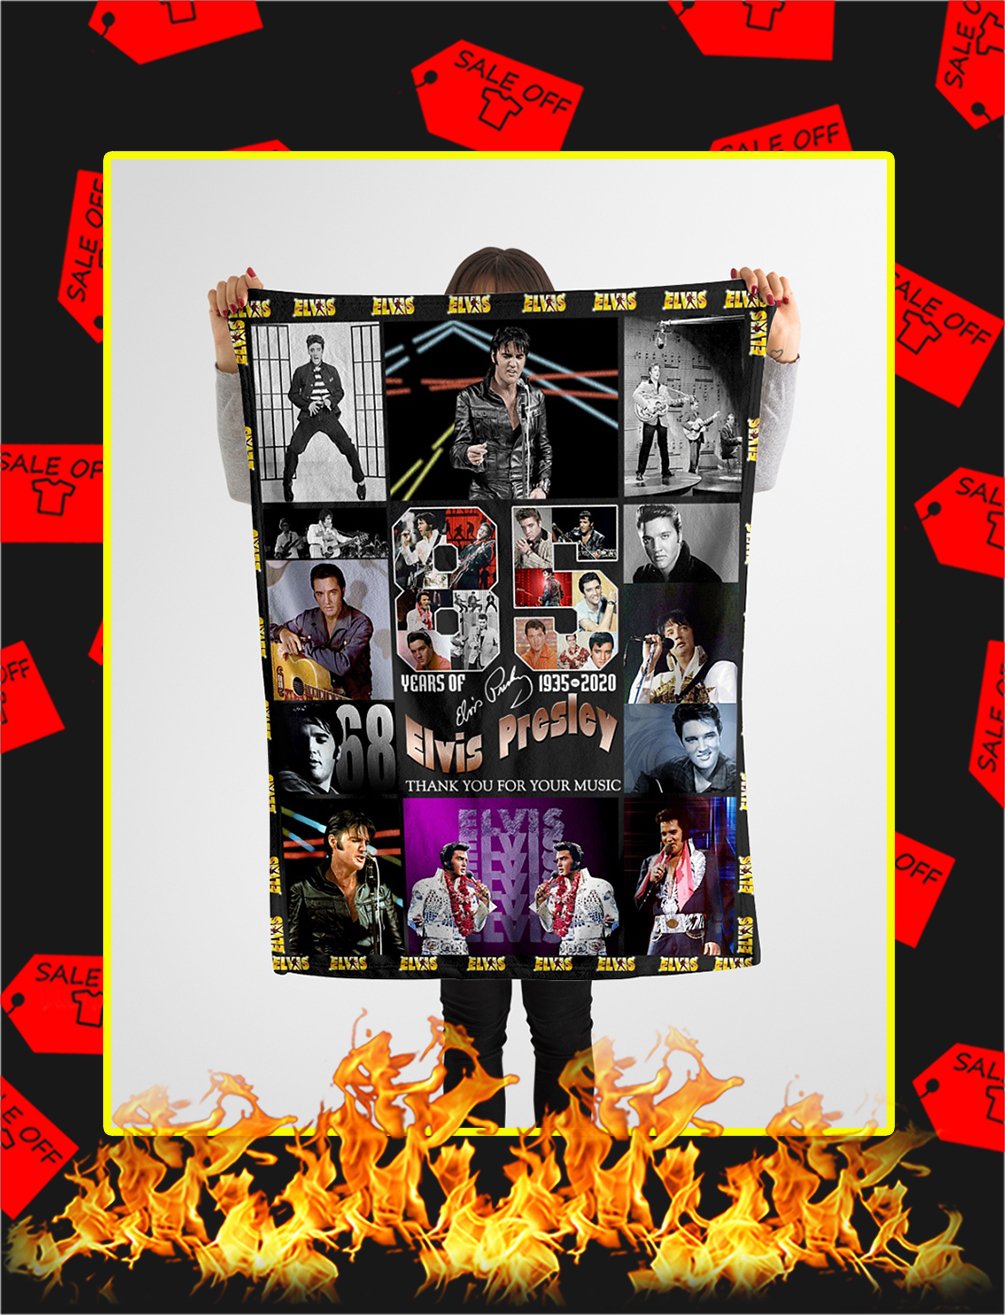 85 Years Of Elvis Presley 1935 2020 Thank You For Your Music Blanket- x large